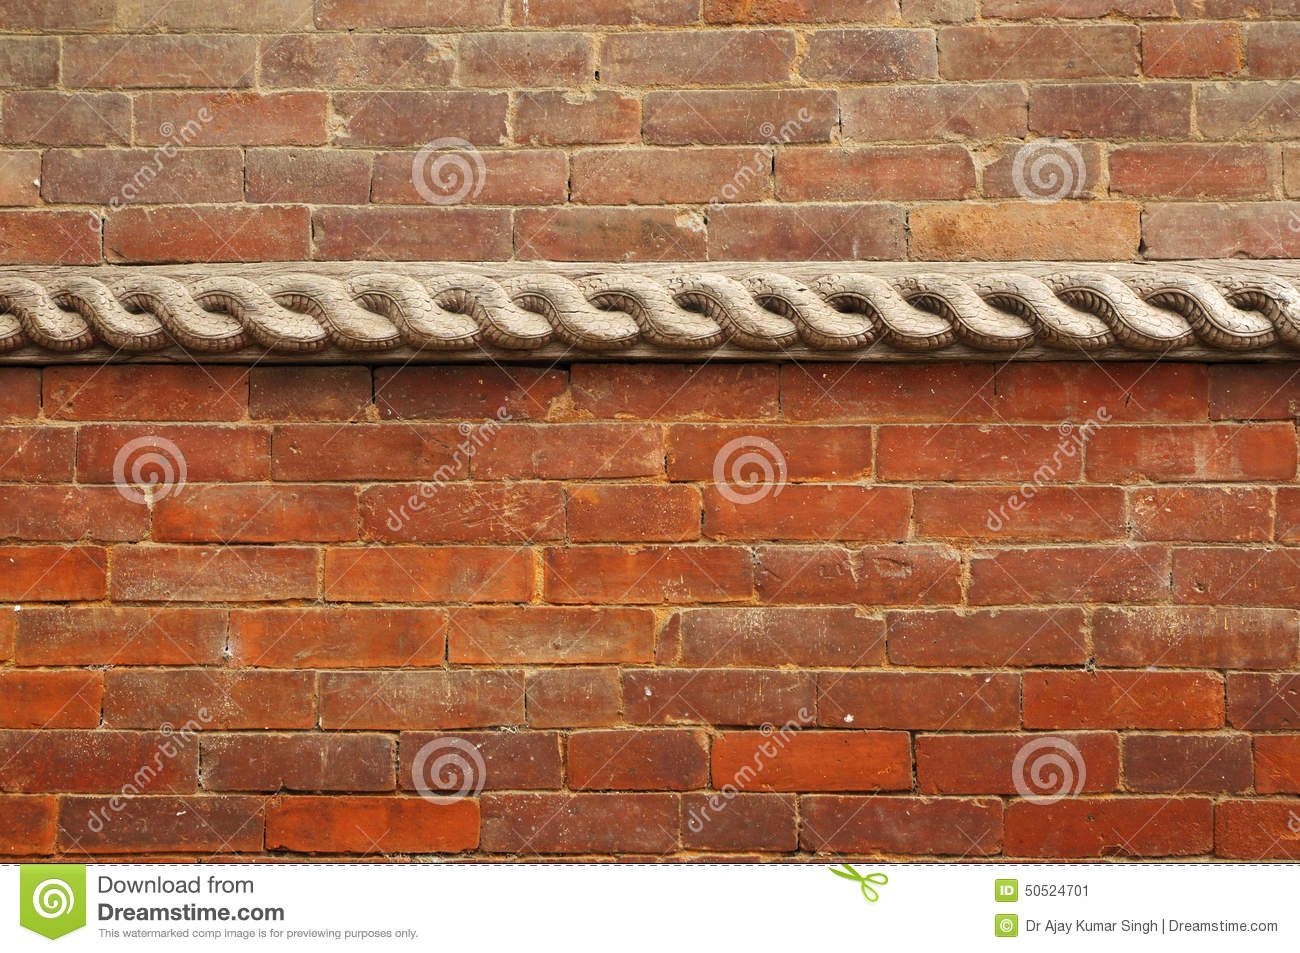 Wooden work on the wall of hanuman dhoka durbar stock for Wooden work on wall